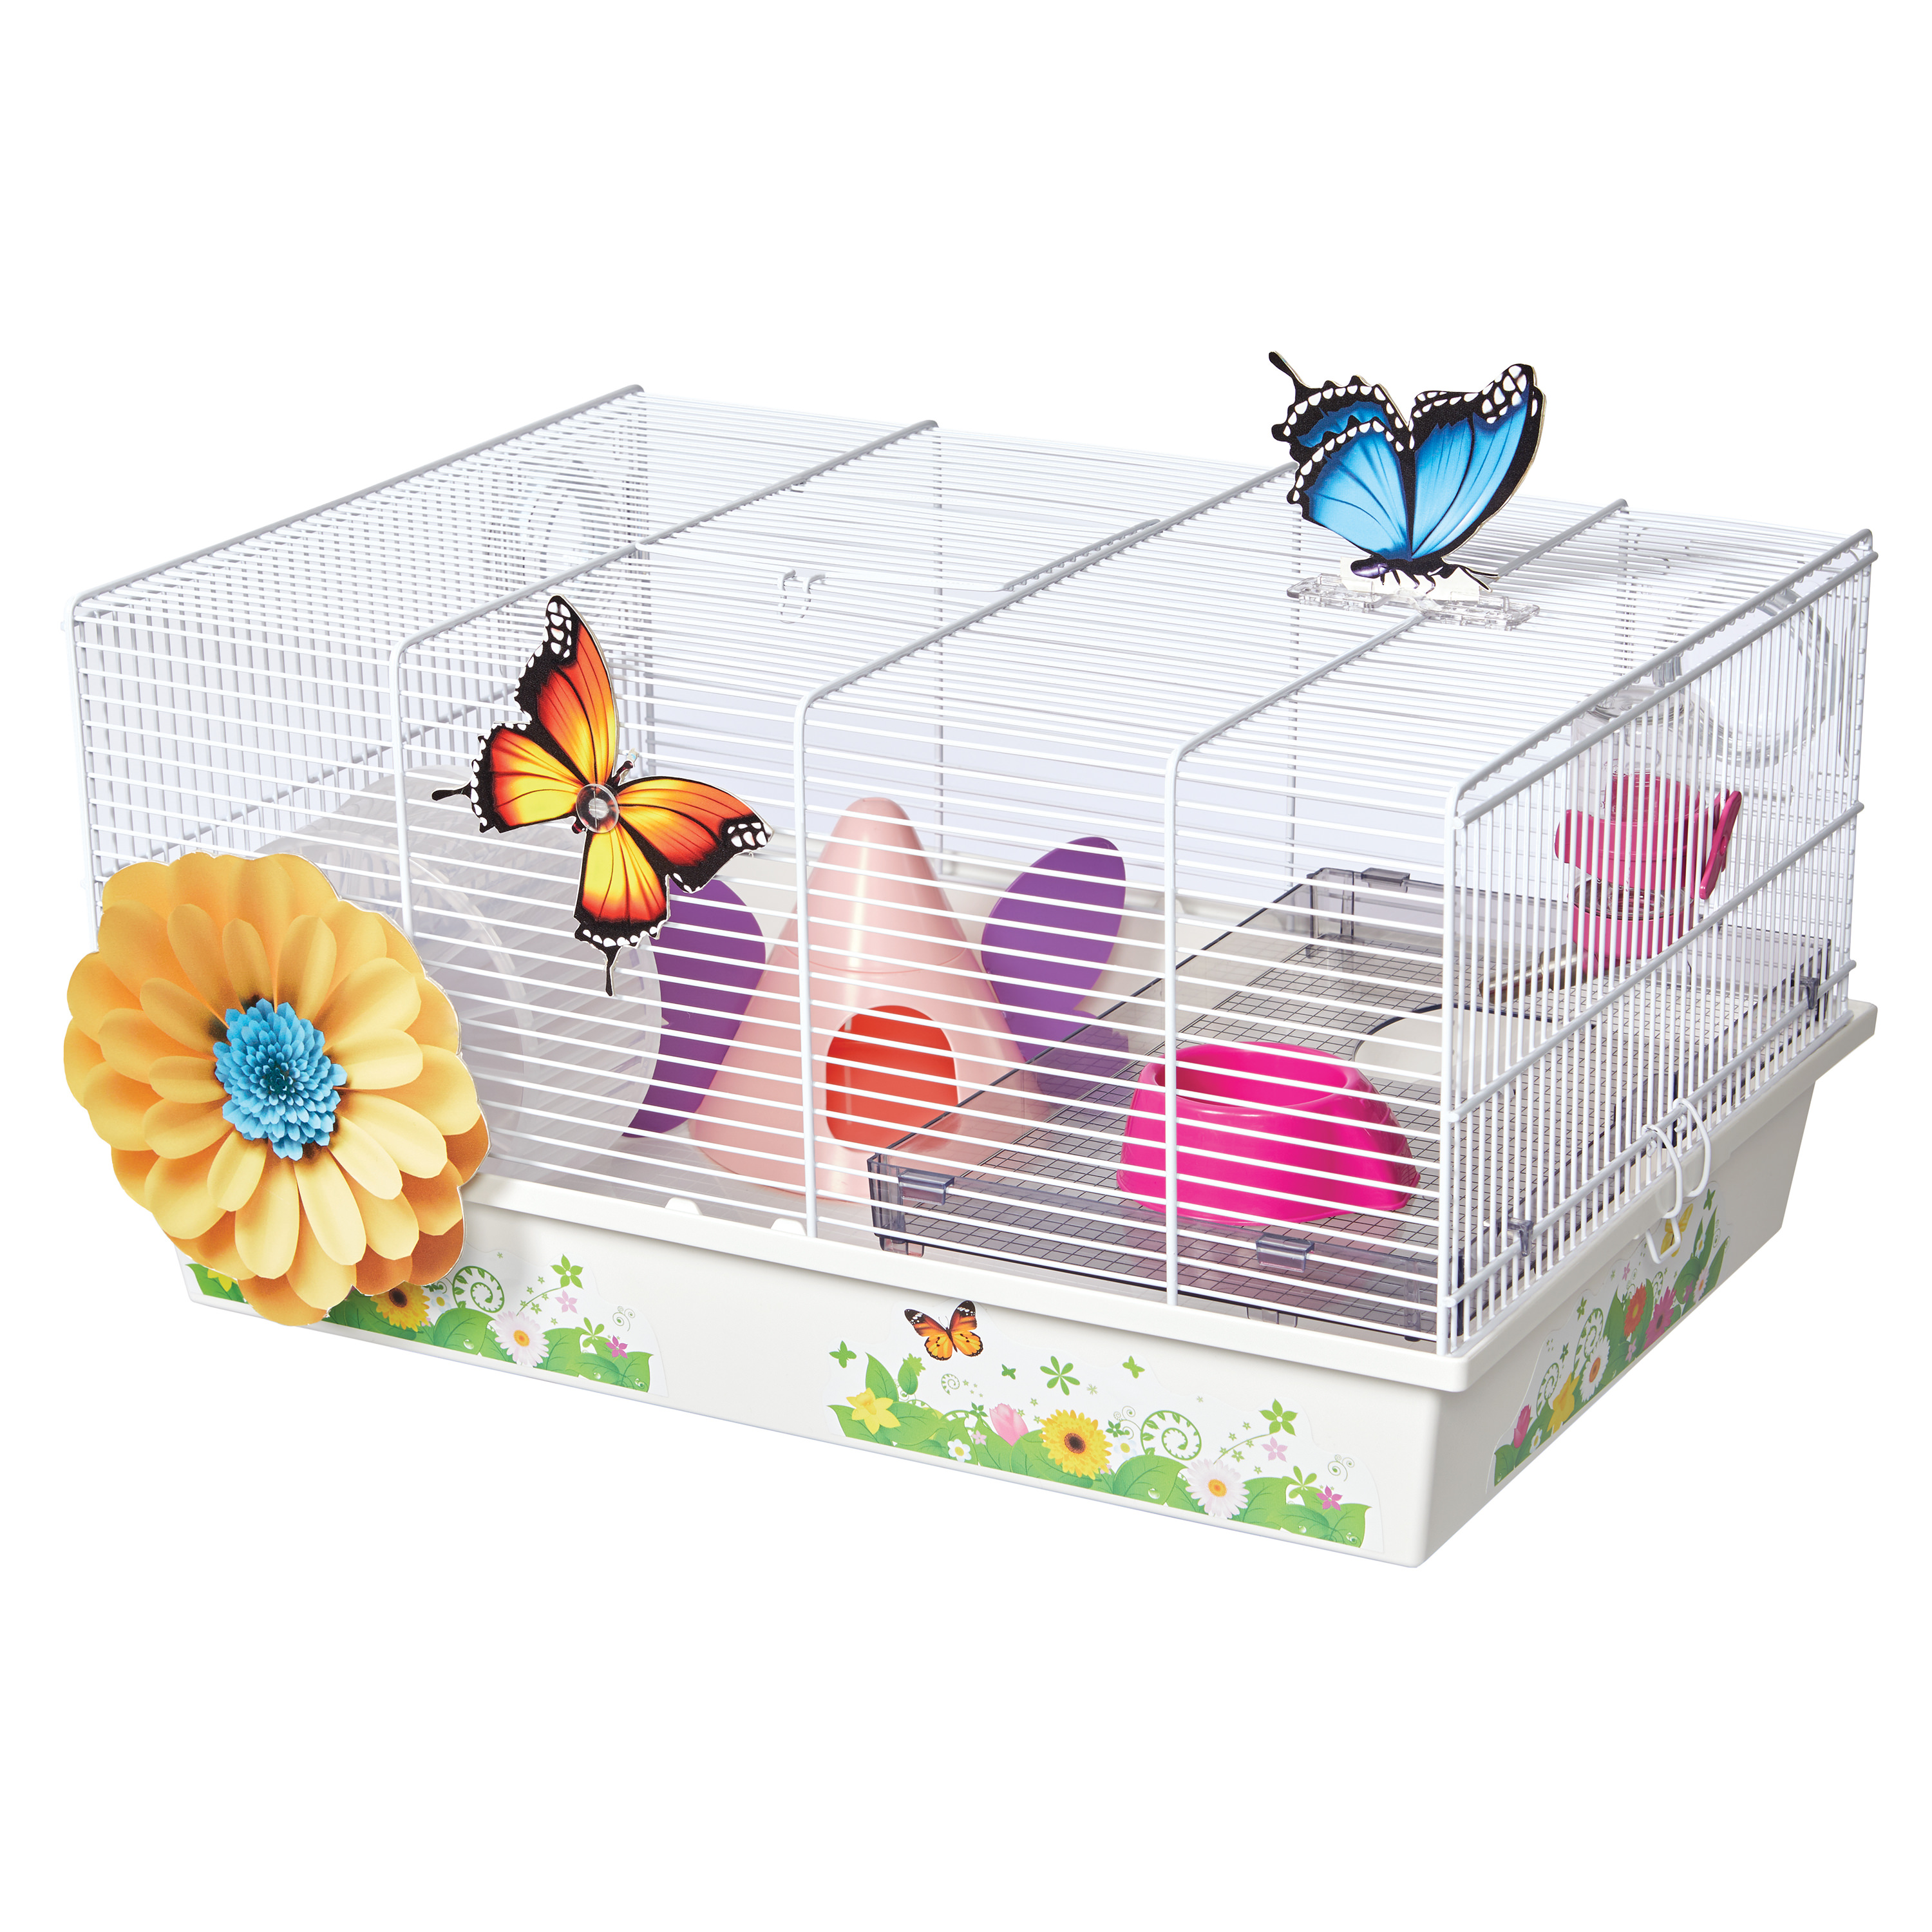 Butterfly Hamster Cage